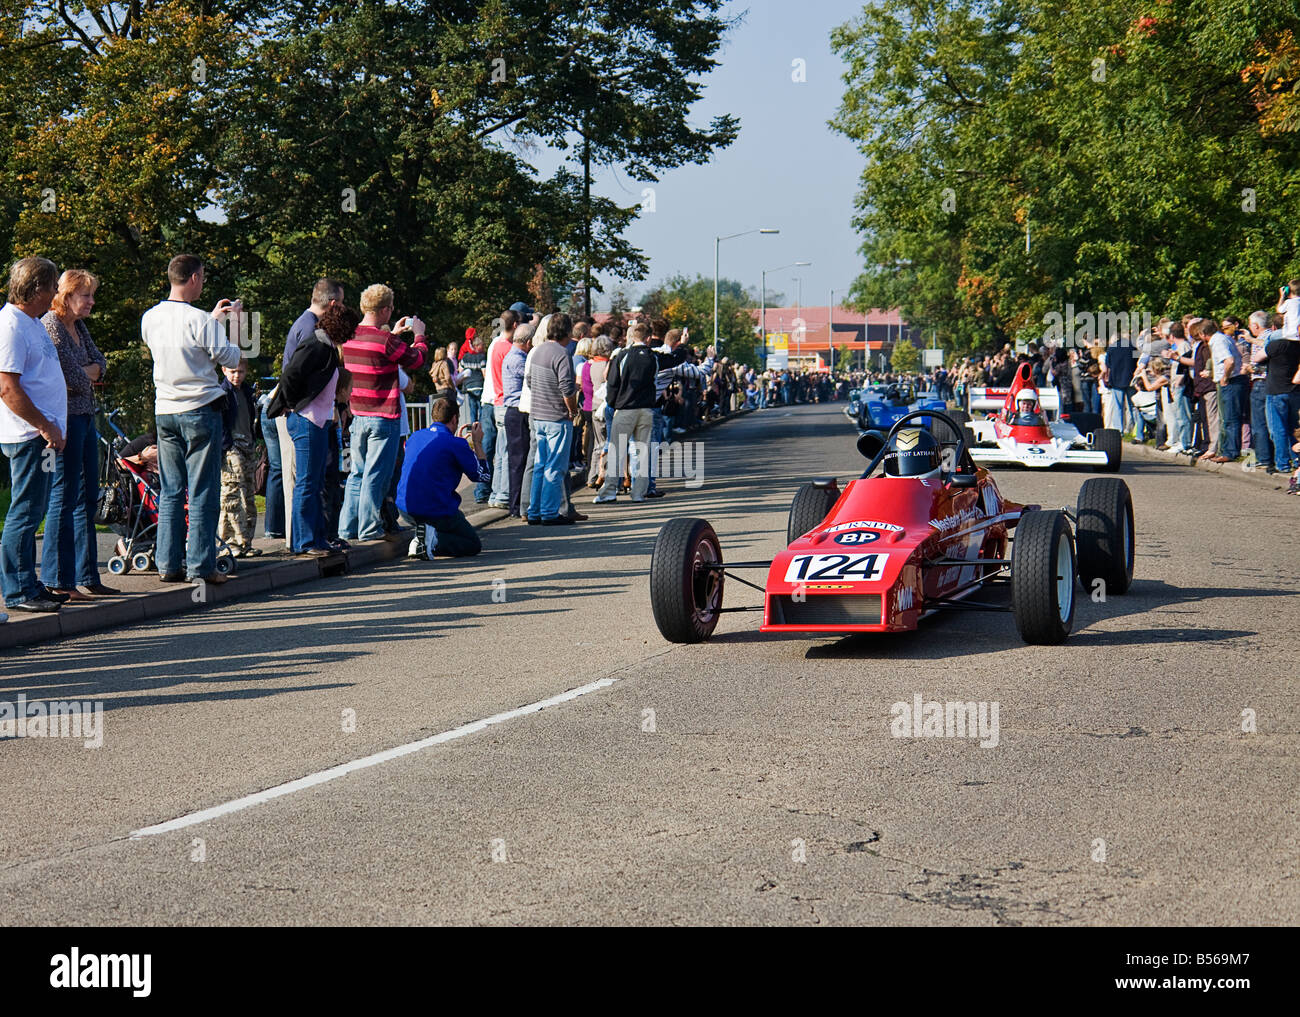 The Lola T640 Formula Ford 1600 during Lola\'s 50th Anniversary Stock ...